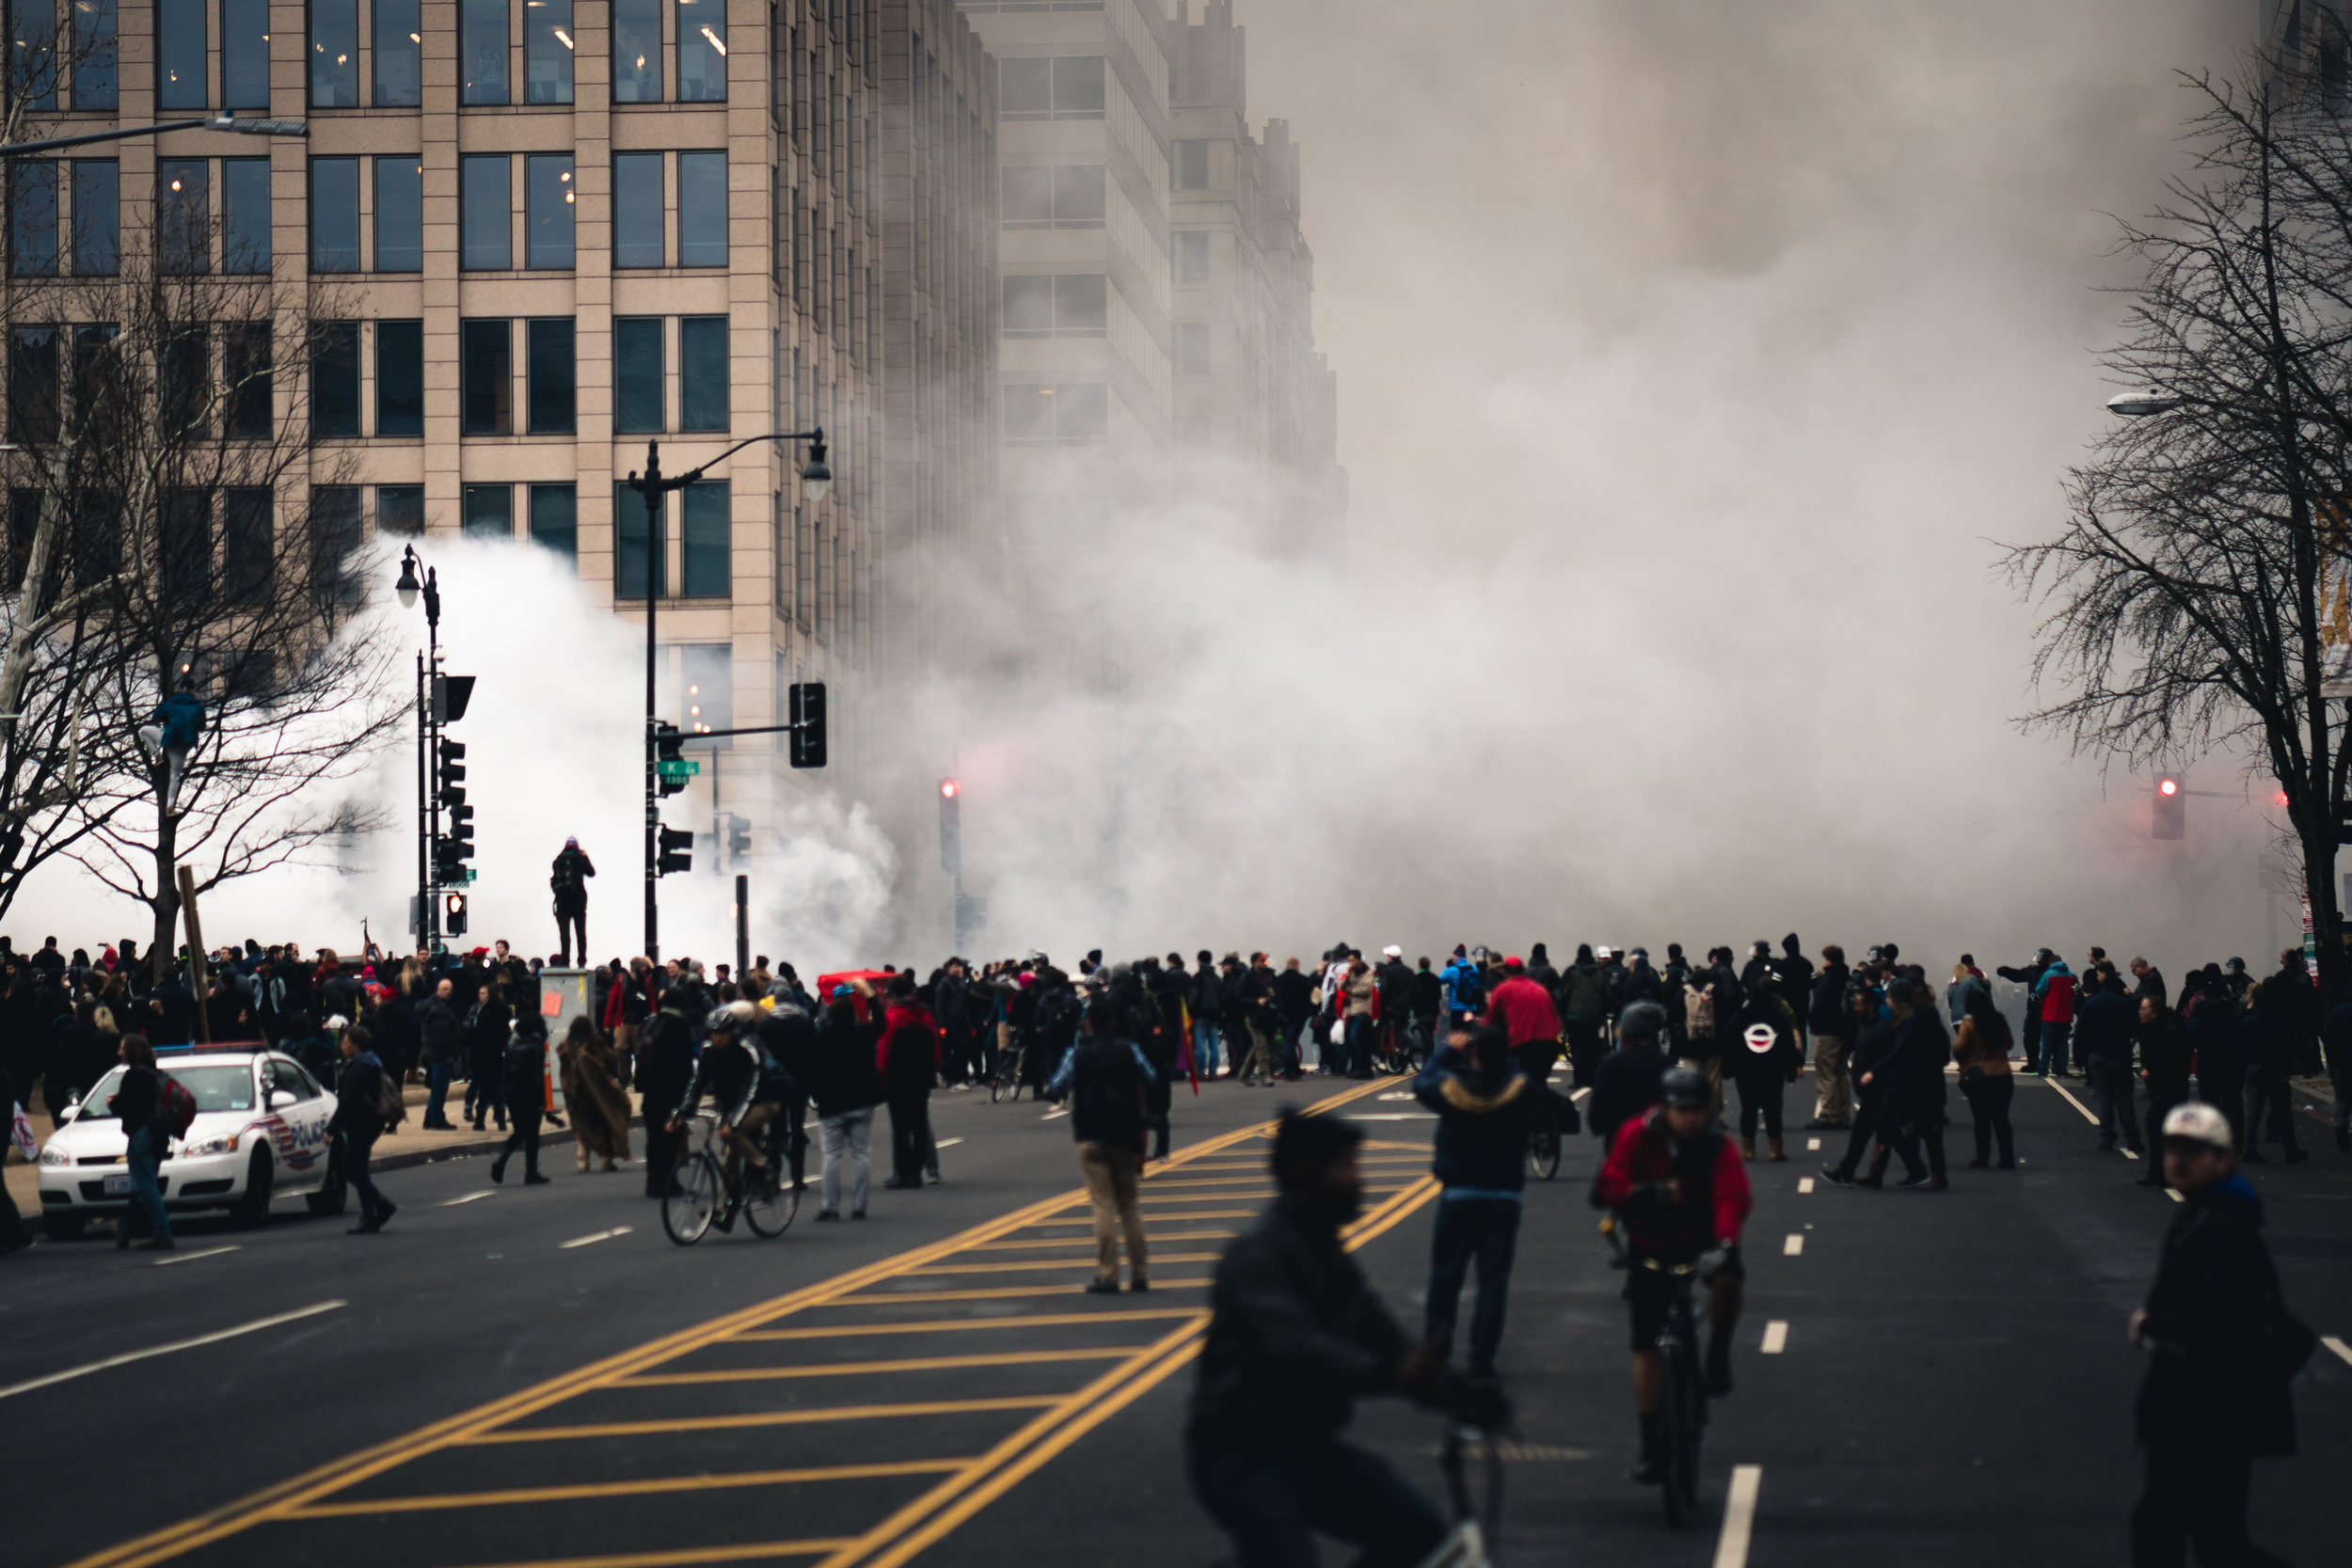 The moment when protest turned to riot, in my mind, when people set a limosine on fire in front of the Washington Post building, on Franklin Square.